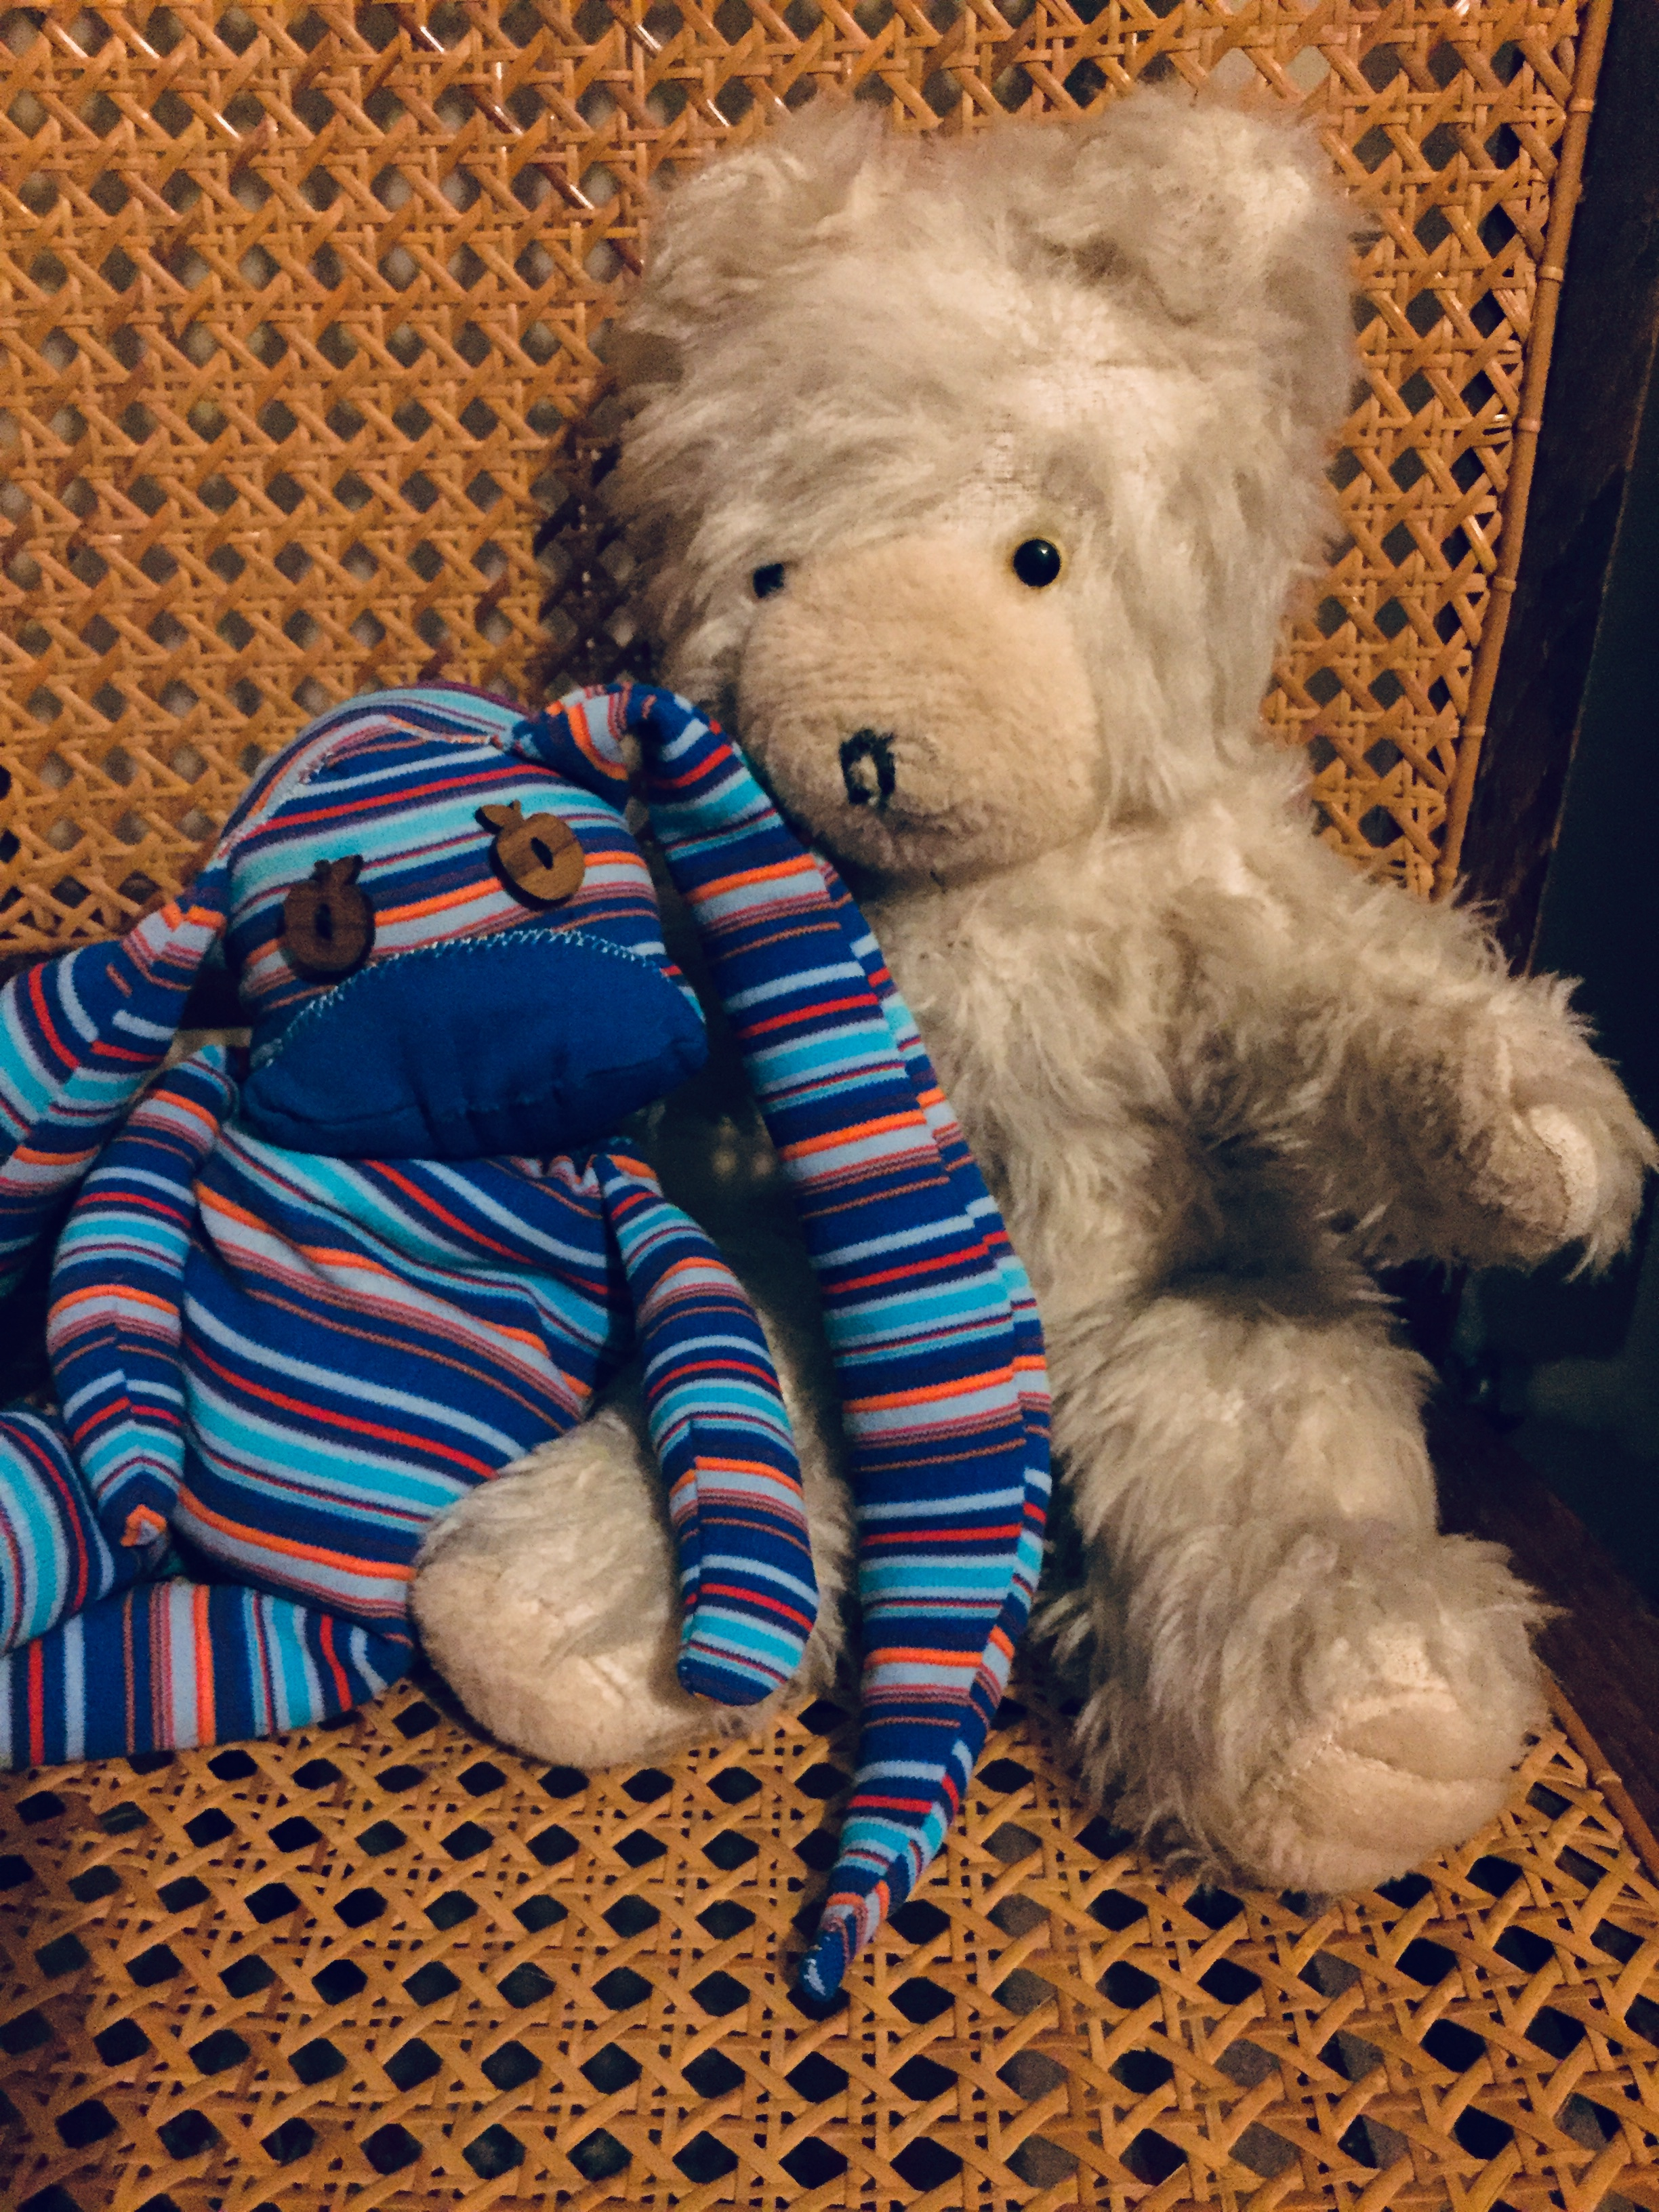 Image of a childs teddy bear